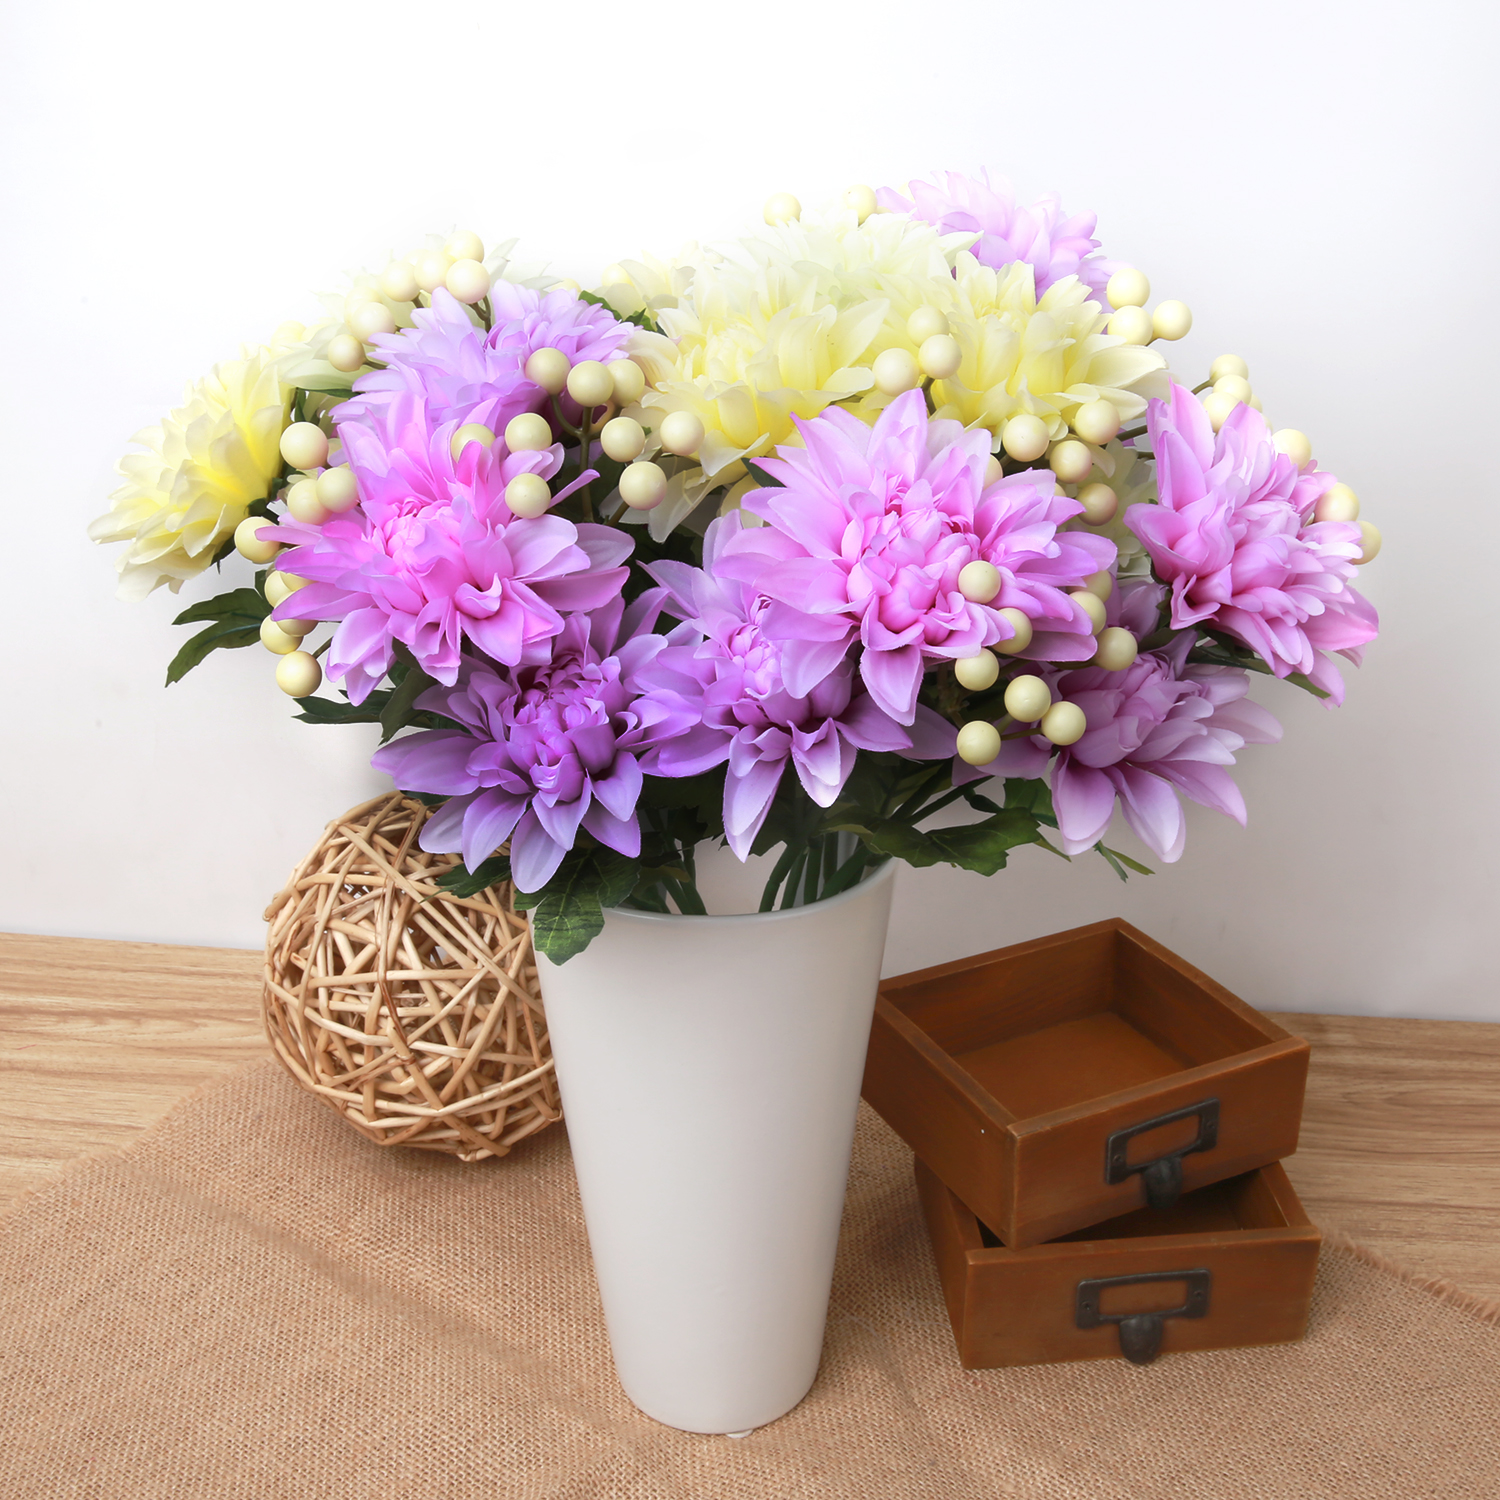 1 bouquet 5 head artificial flowers fake flowers dahlia flower 1 bouquet 5 head artificial flowers fake flowers dahlia flower wedding party decoration diy home art decor p20 in artificial dried flowers from home izmirmasajfo